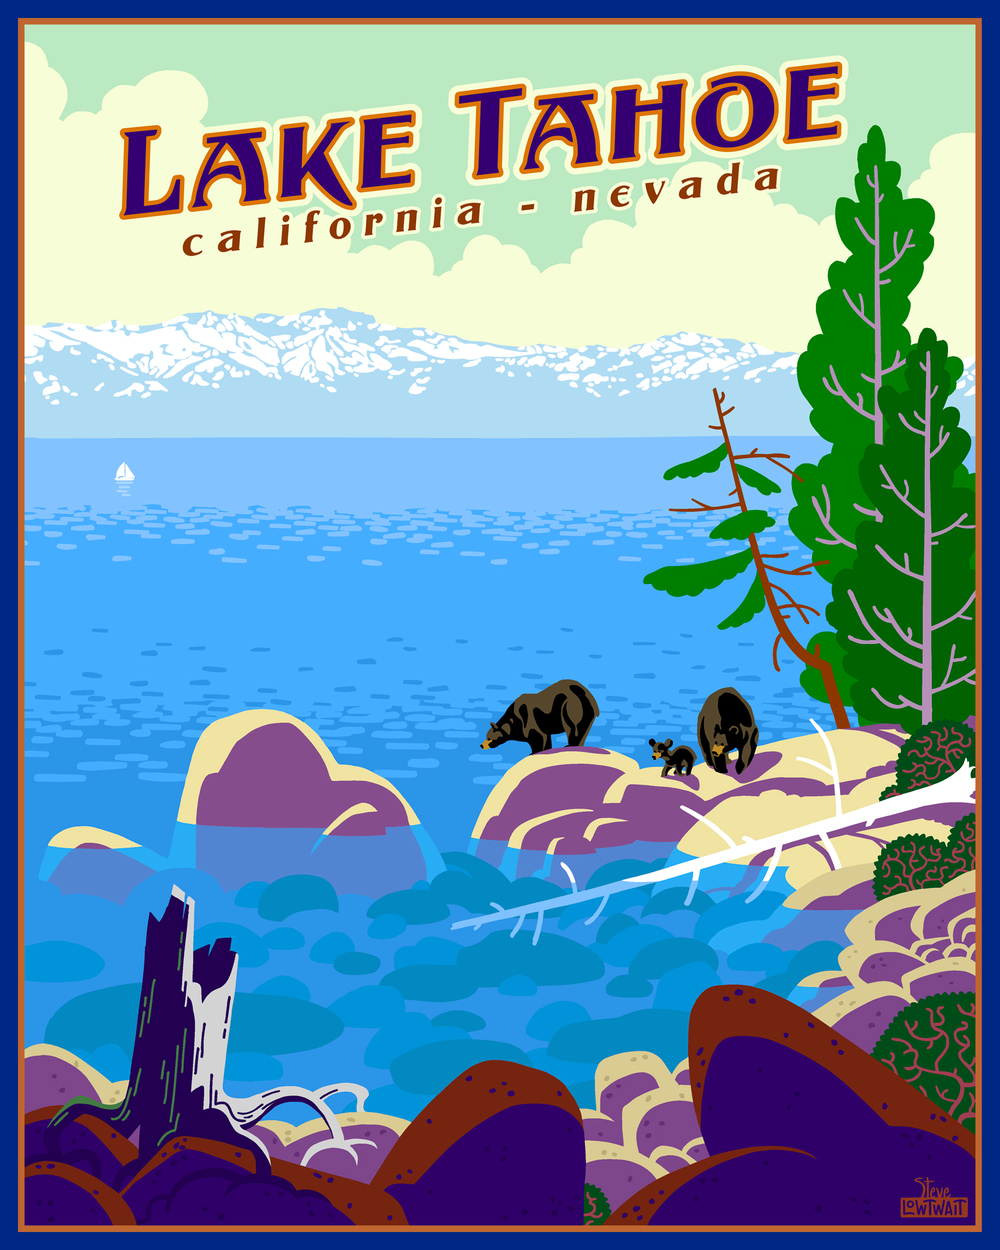 Lake Tahoe, California - Nevada • Buy